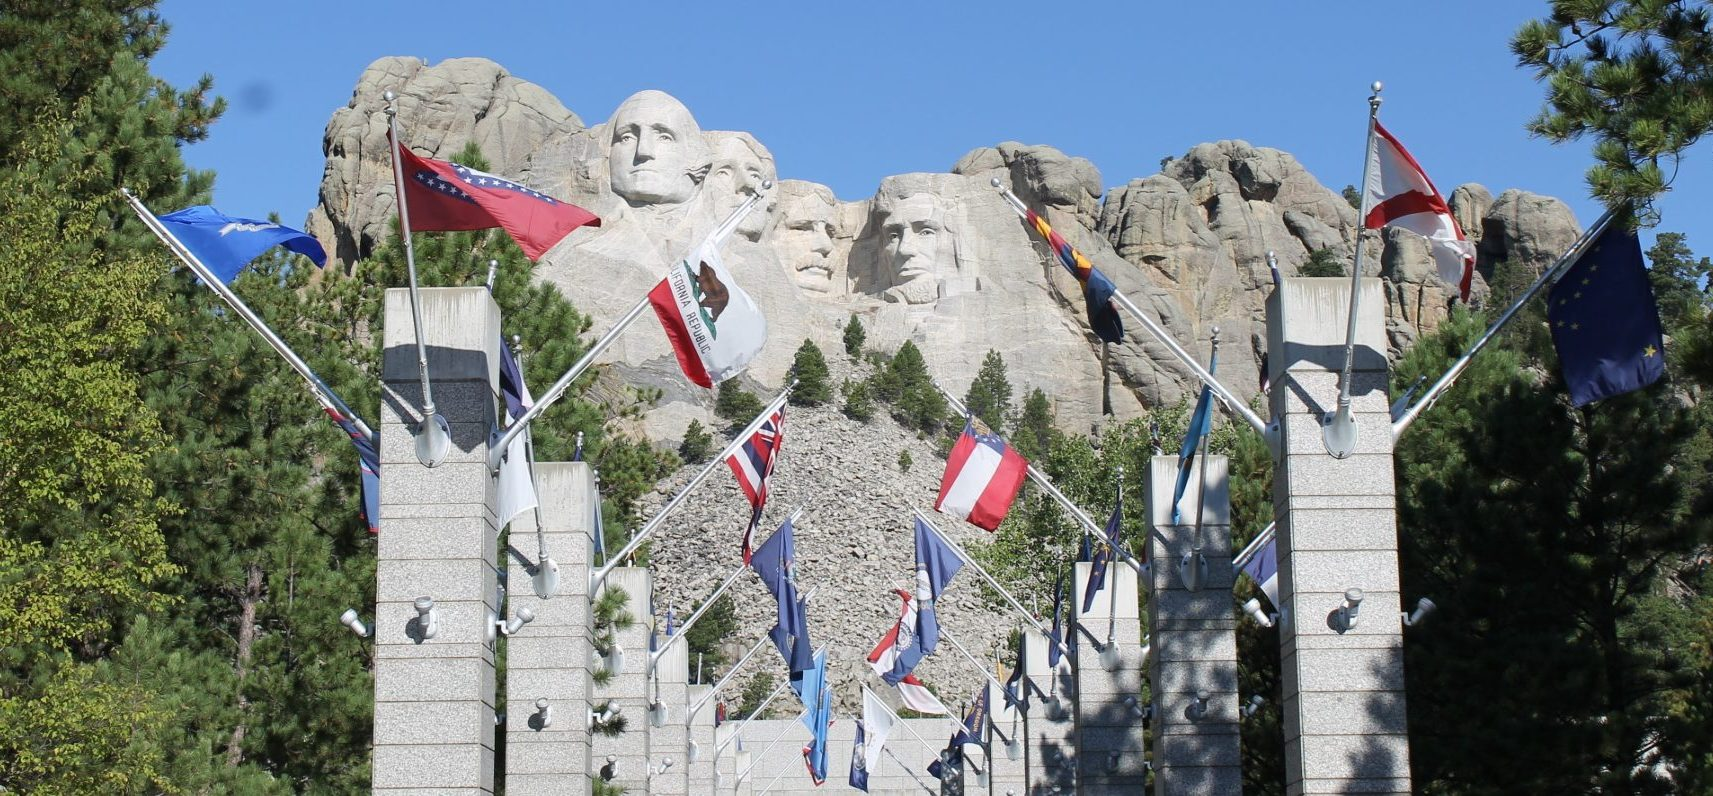 Avenue of States' Flags Mt. Rushmore